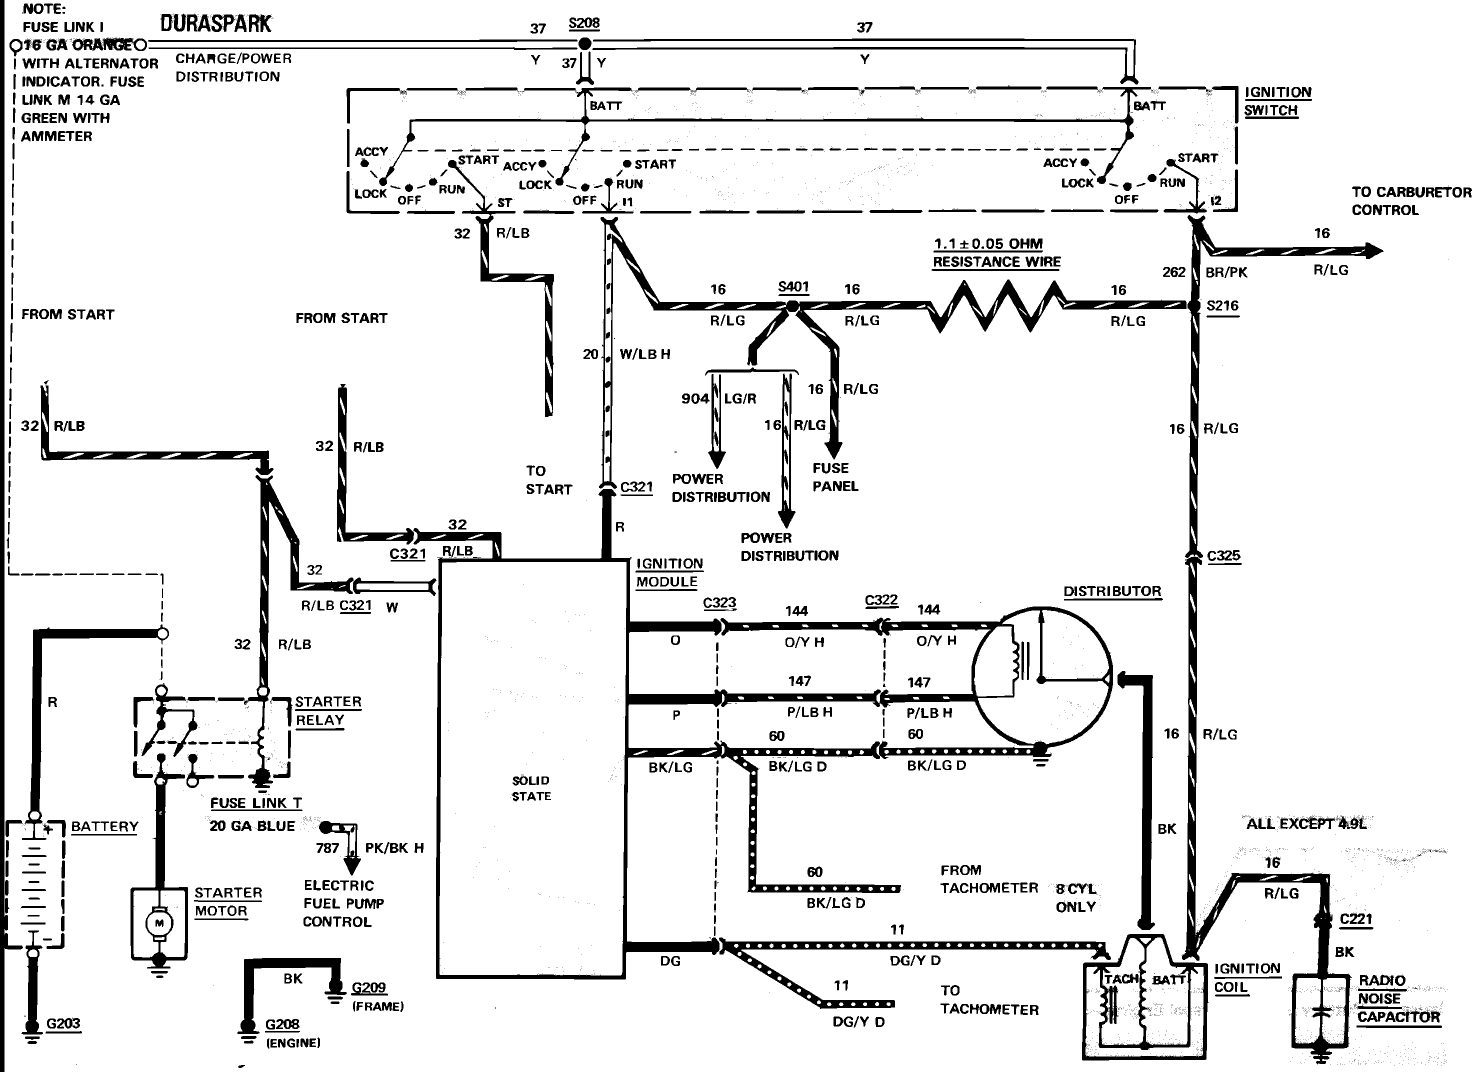 hight resolution of for a 1976 f100 ignition wiring diagram wiring diagram view 1976 ford f250 ignition wiring diagram